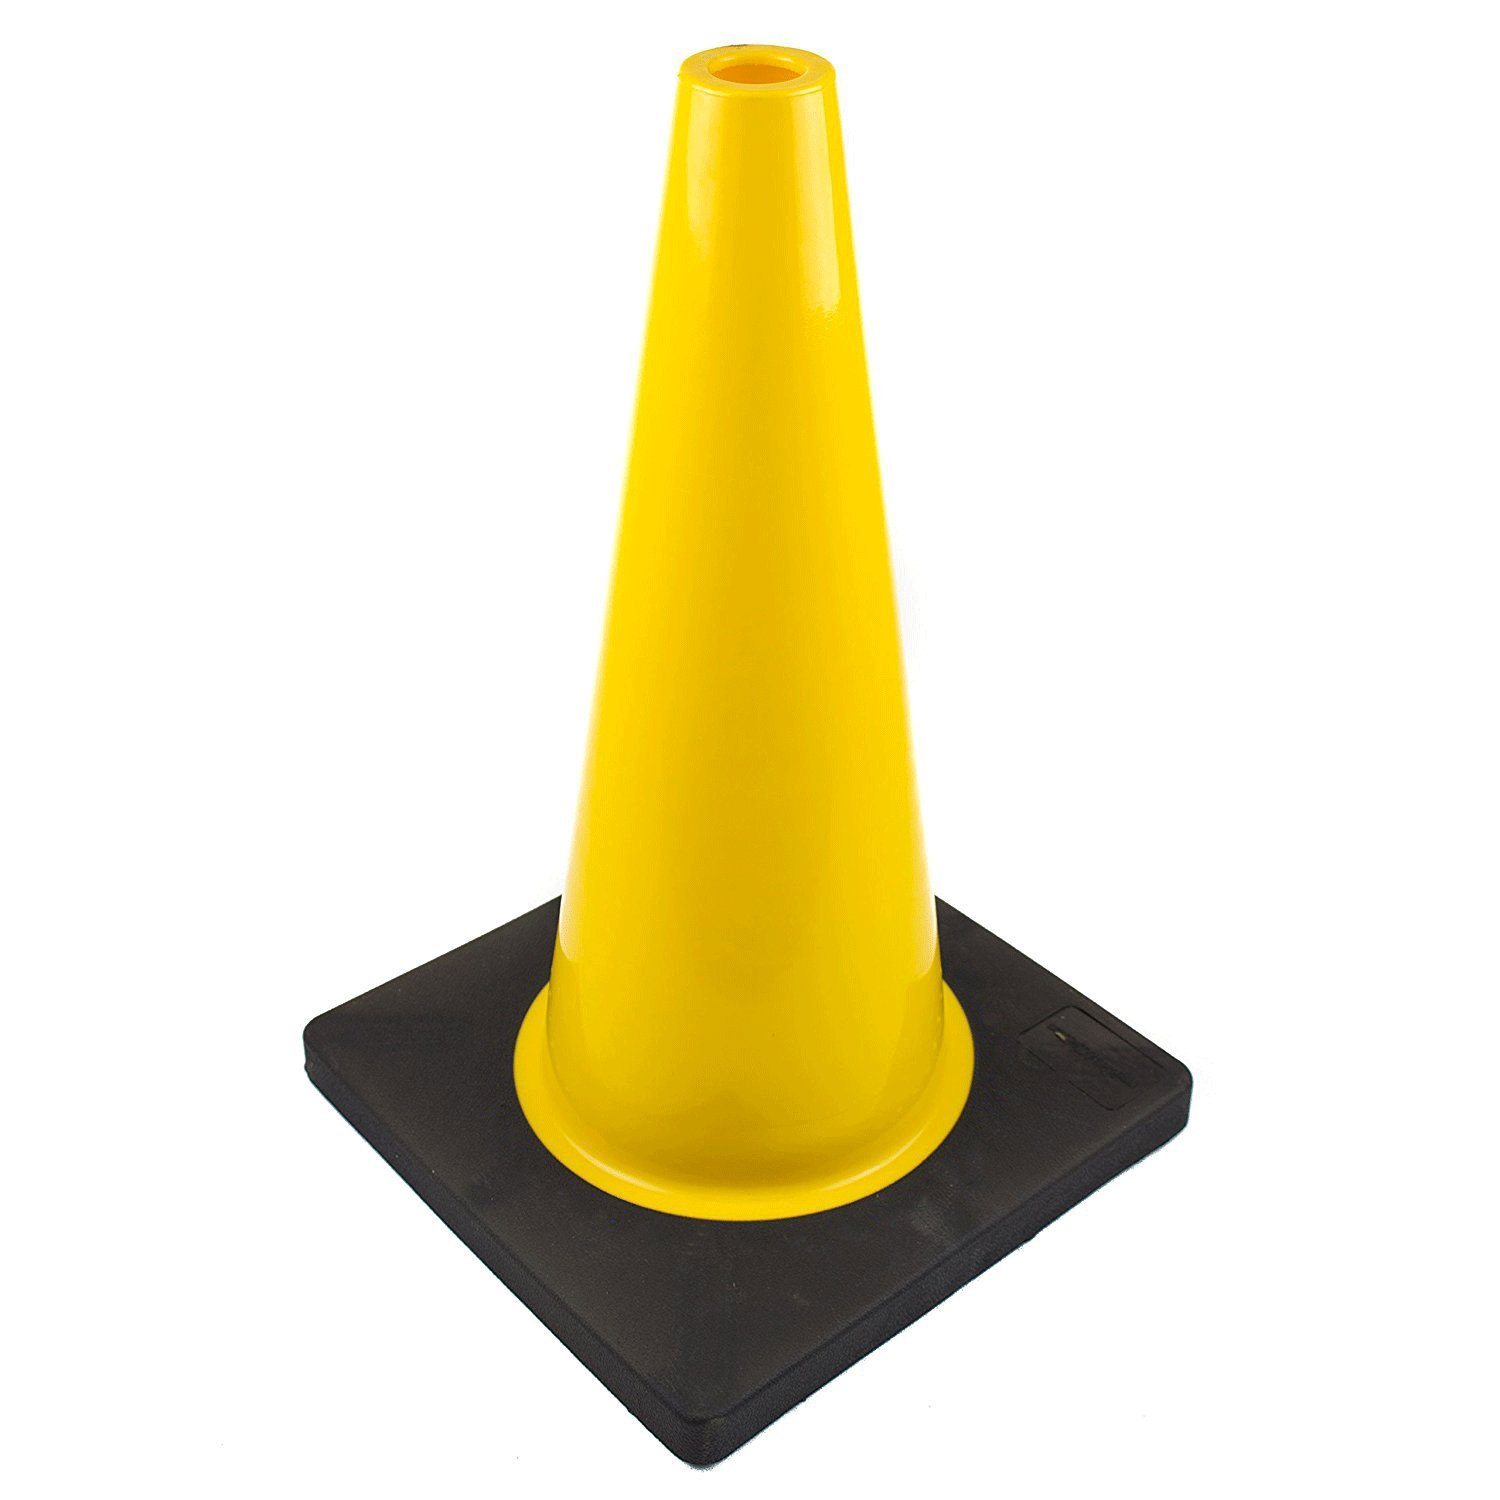 (Set of 12) RK PVC Traffic Safety Cone, Black Base, 18-Inch, Yellow